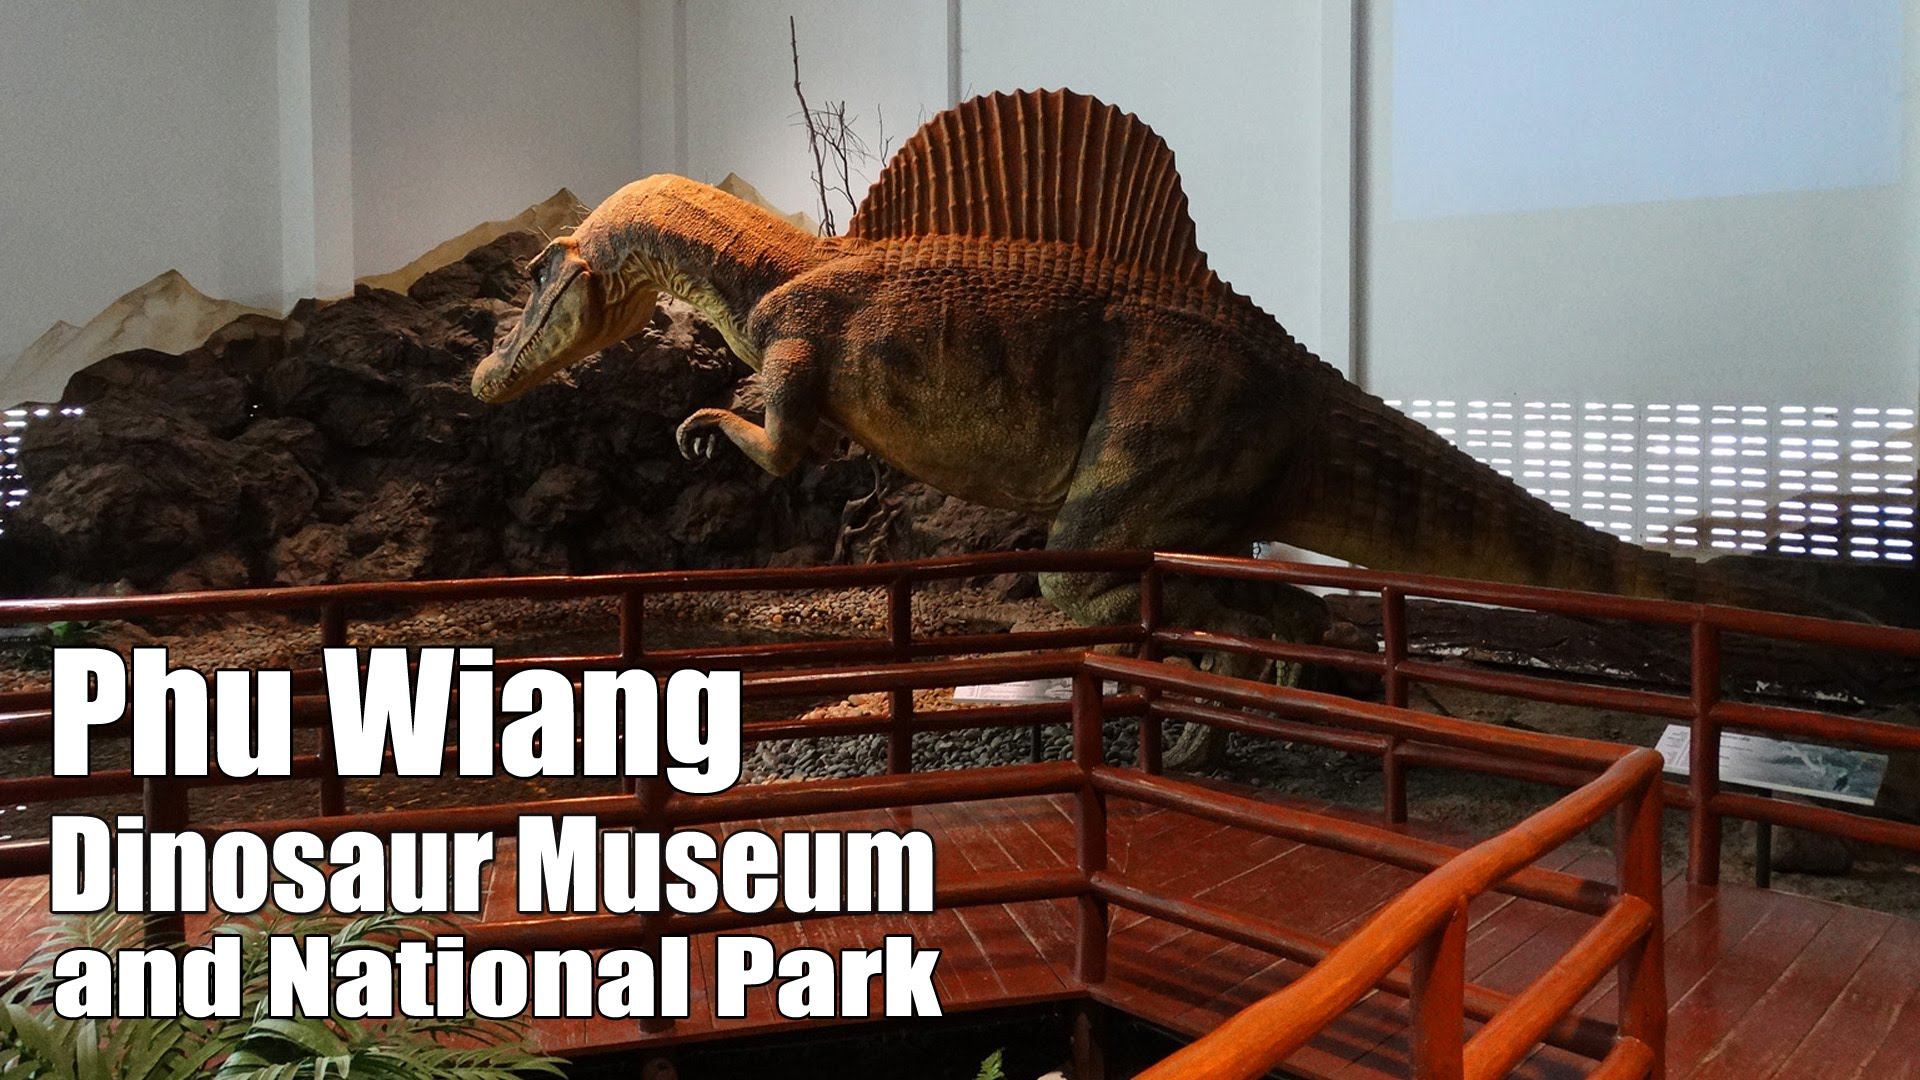 Si Wiang Dinosaur Park Phu Wiang National Park, Phu Wiang Dinosaur Museum in the Phu Wiang national park, west of ...